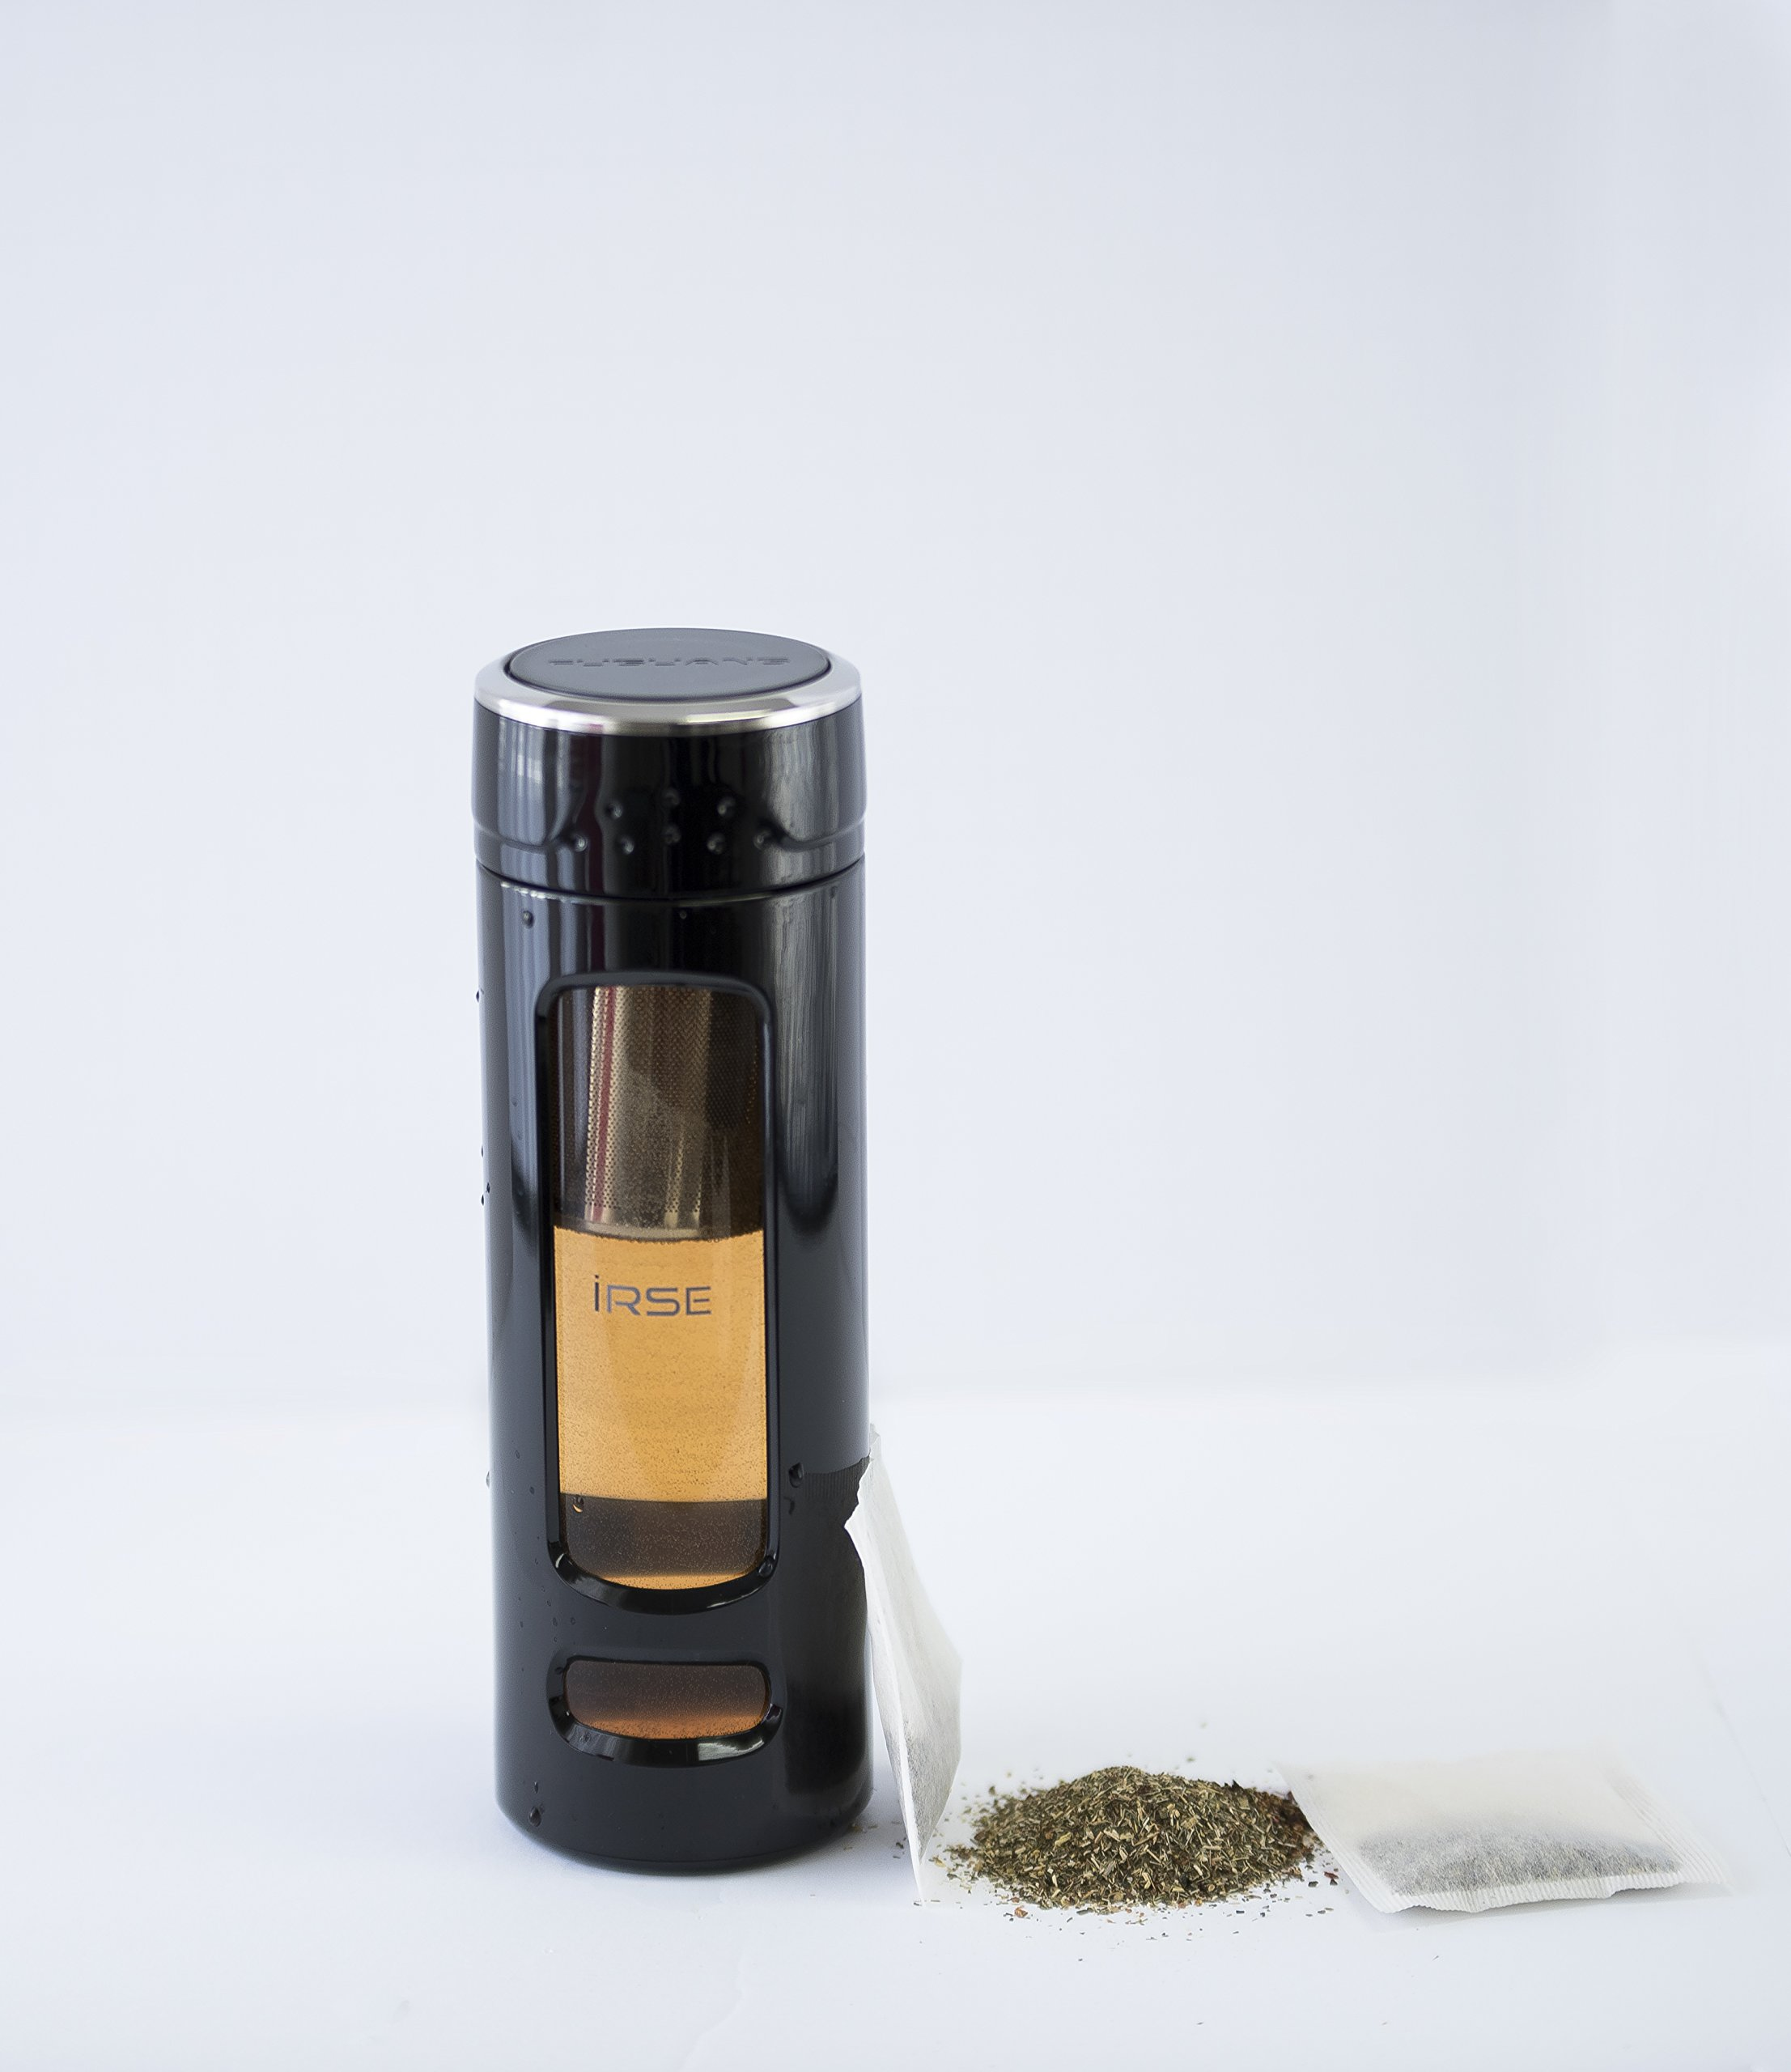 iRSE Tea Infuser Bottle tumbler glass with plastic housing and stainless steel strainer for loose leaf tea maker travel thermos teapot filter ice drink fruit water herbs spices detox 14 oz (Black)